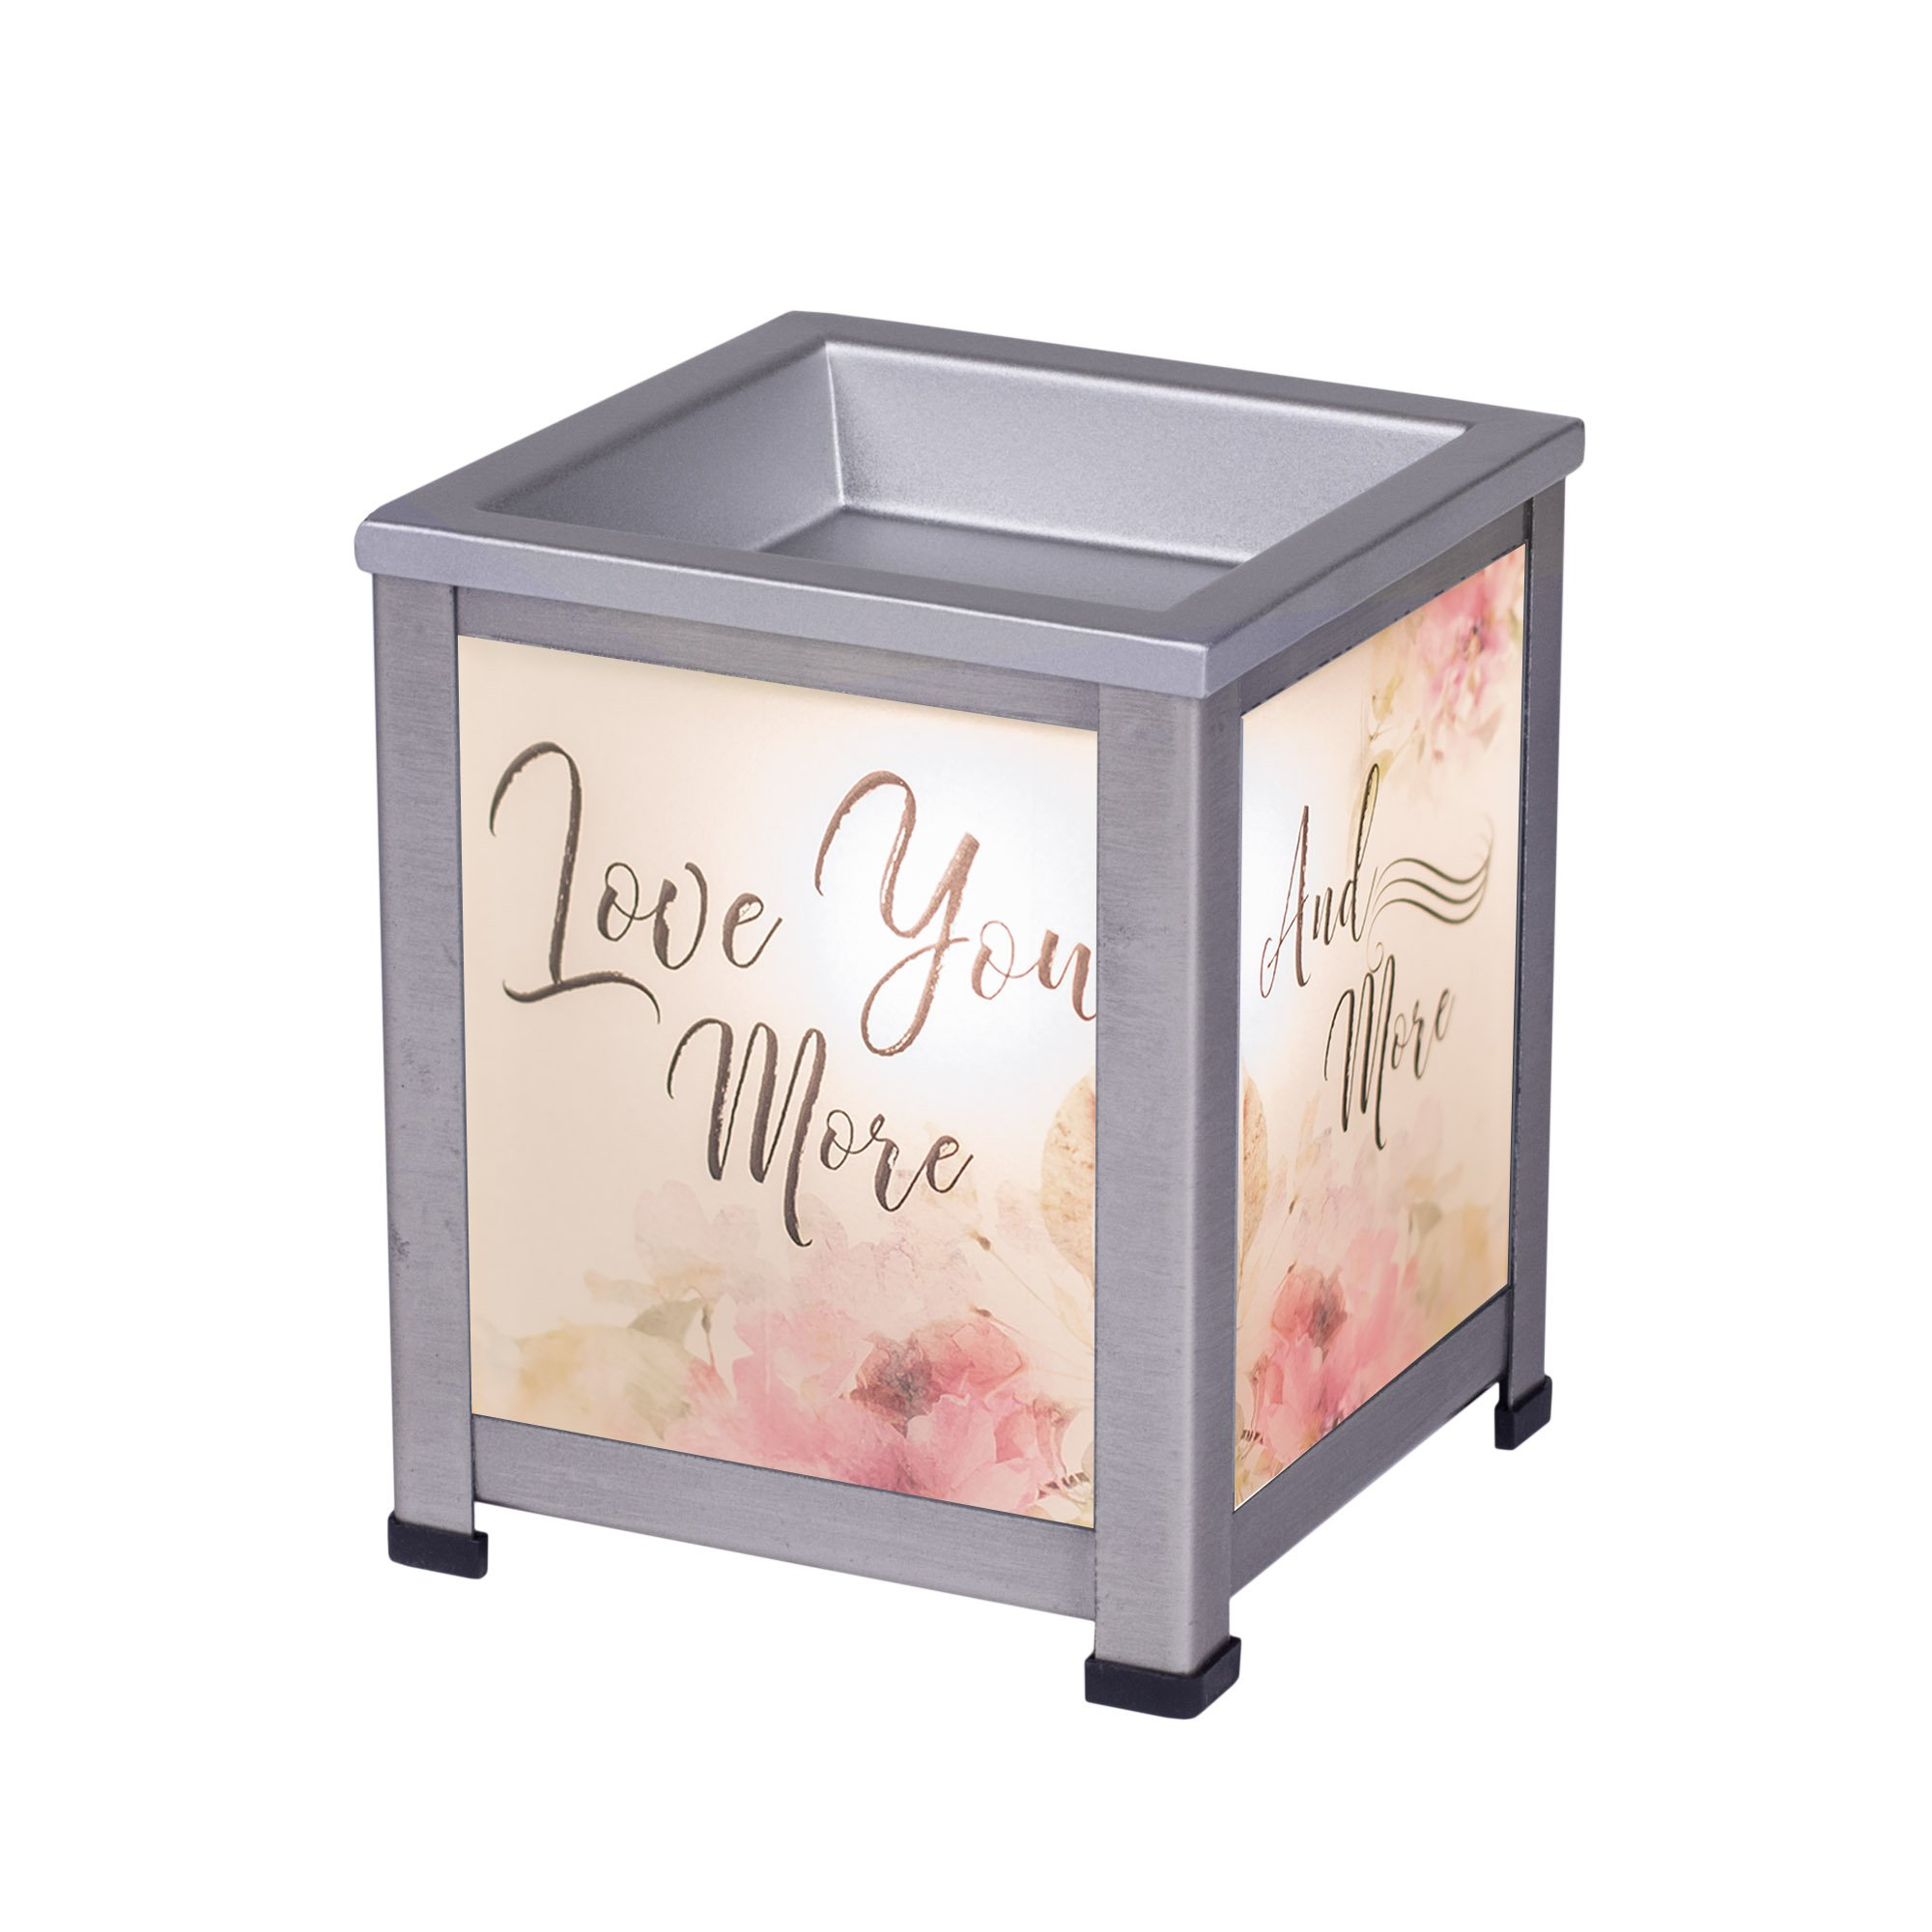 Elanze Designs Everyday Love You More Silver Tone Metal Electrical Wax Tart and Oil Glass Lantern Warmer